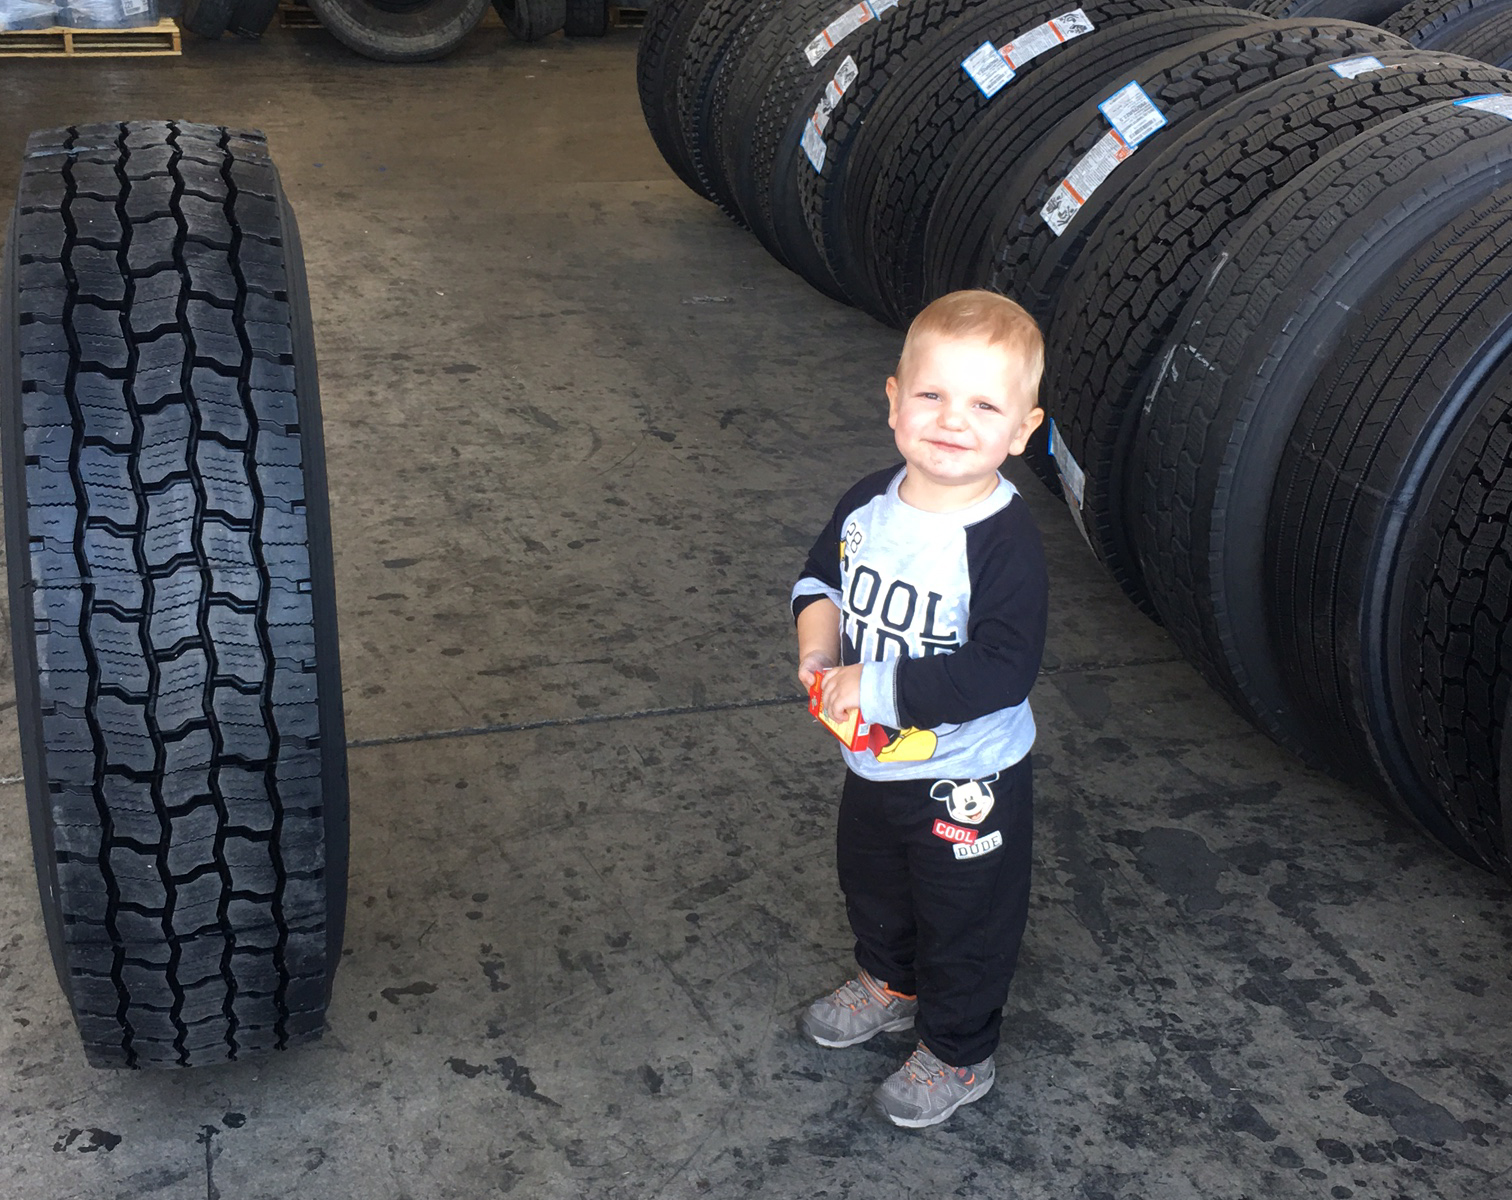 Baby James with Tires